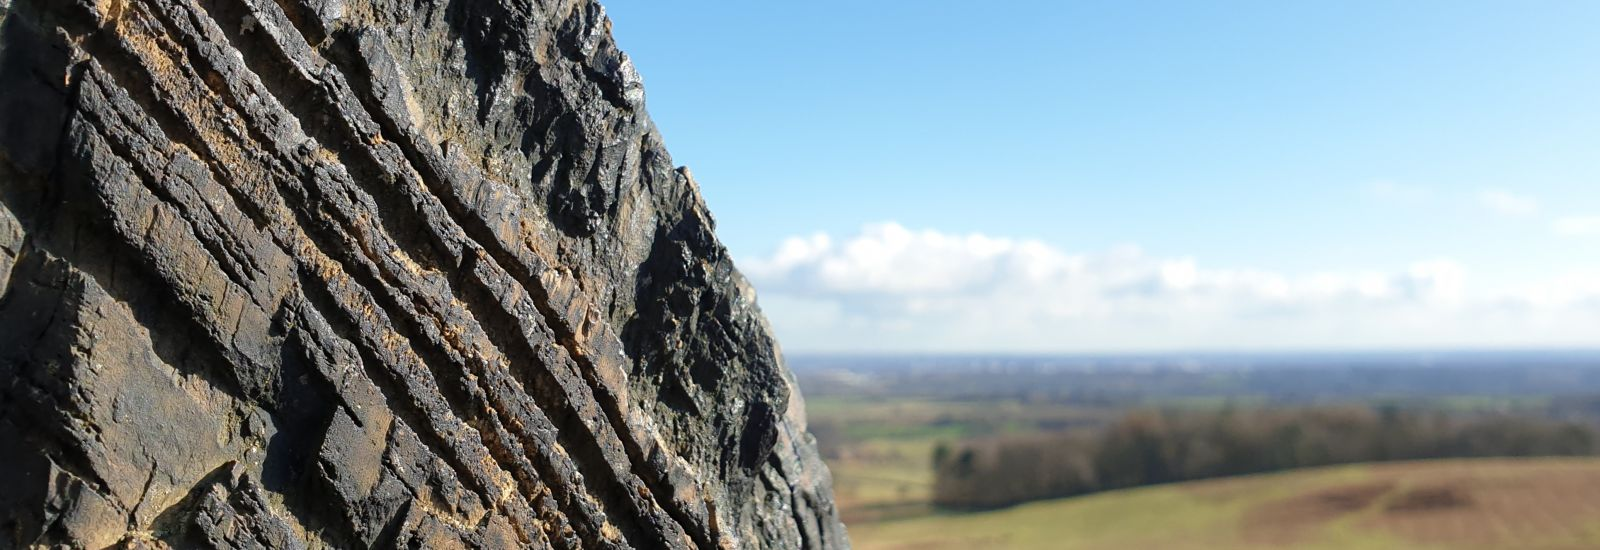 A rock in the foreground, with a backdrop of Charnwood Forest in the East Midlands